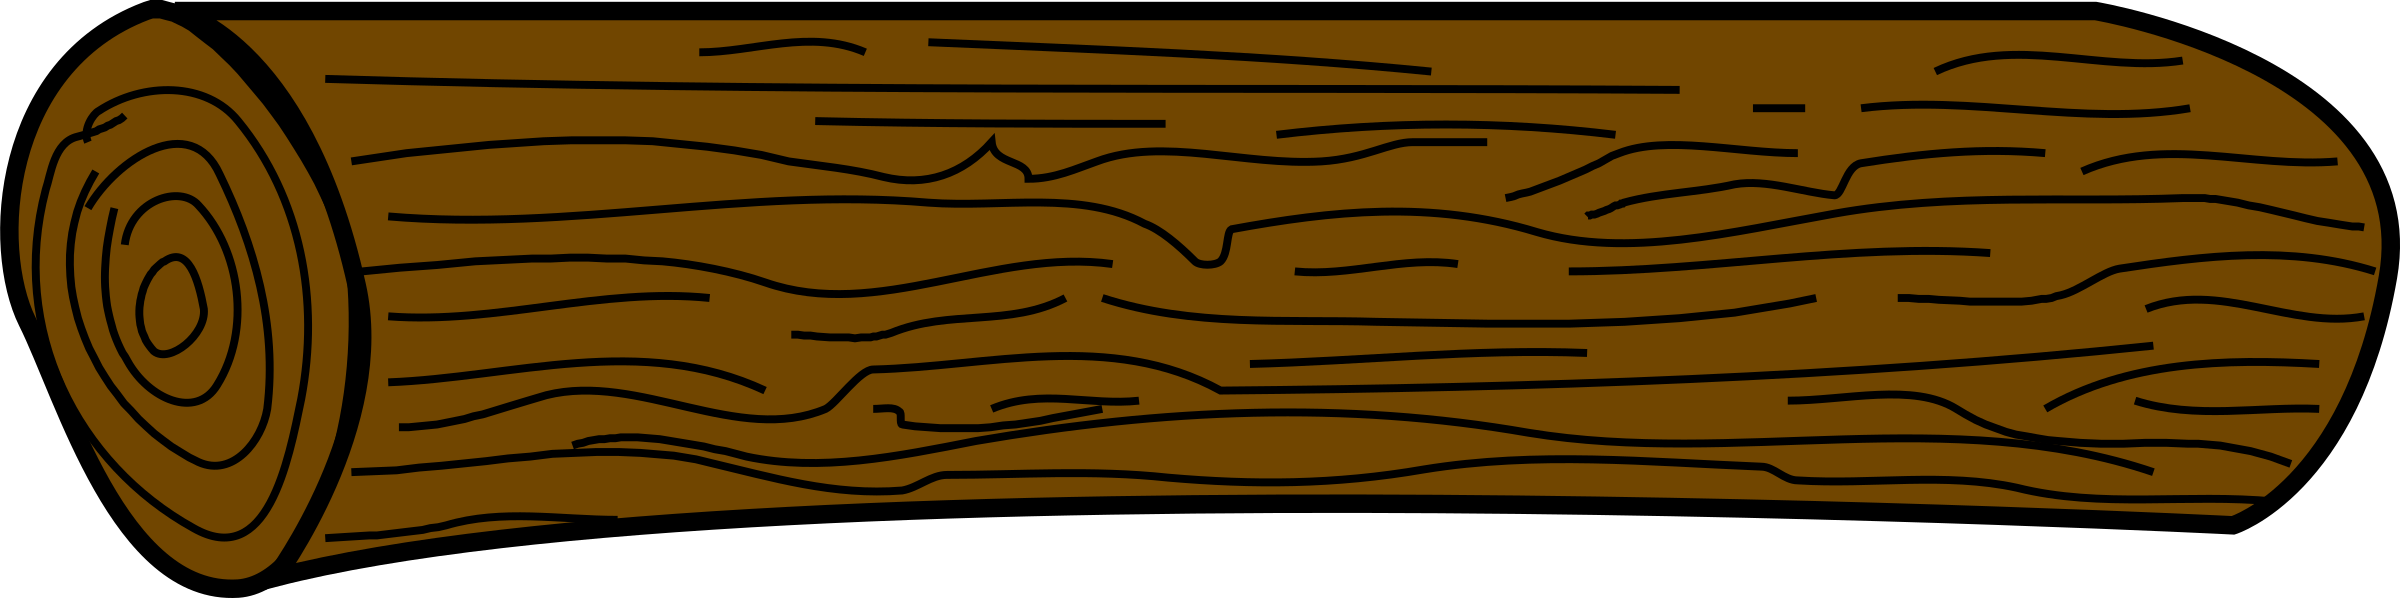 Log by Firkin